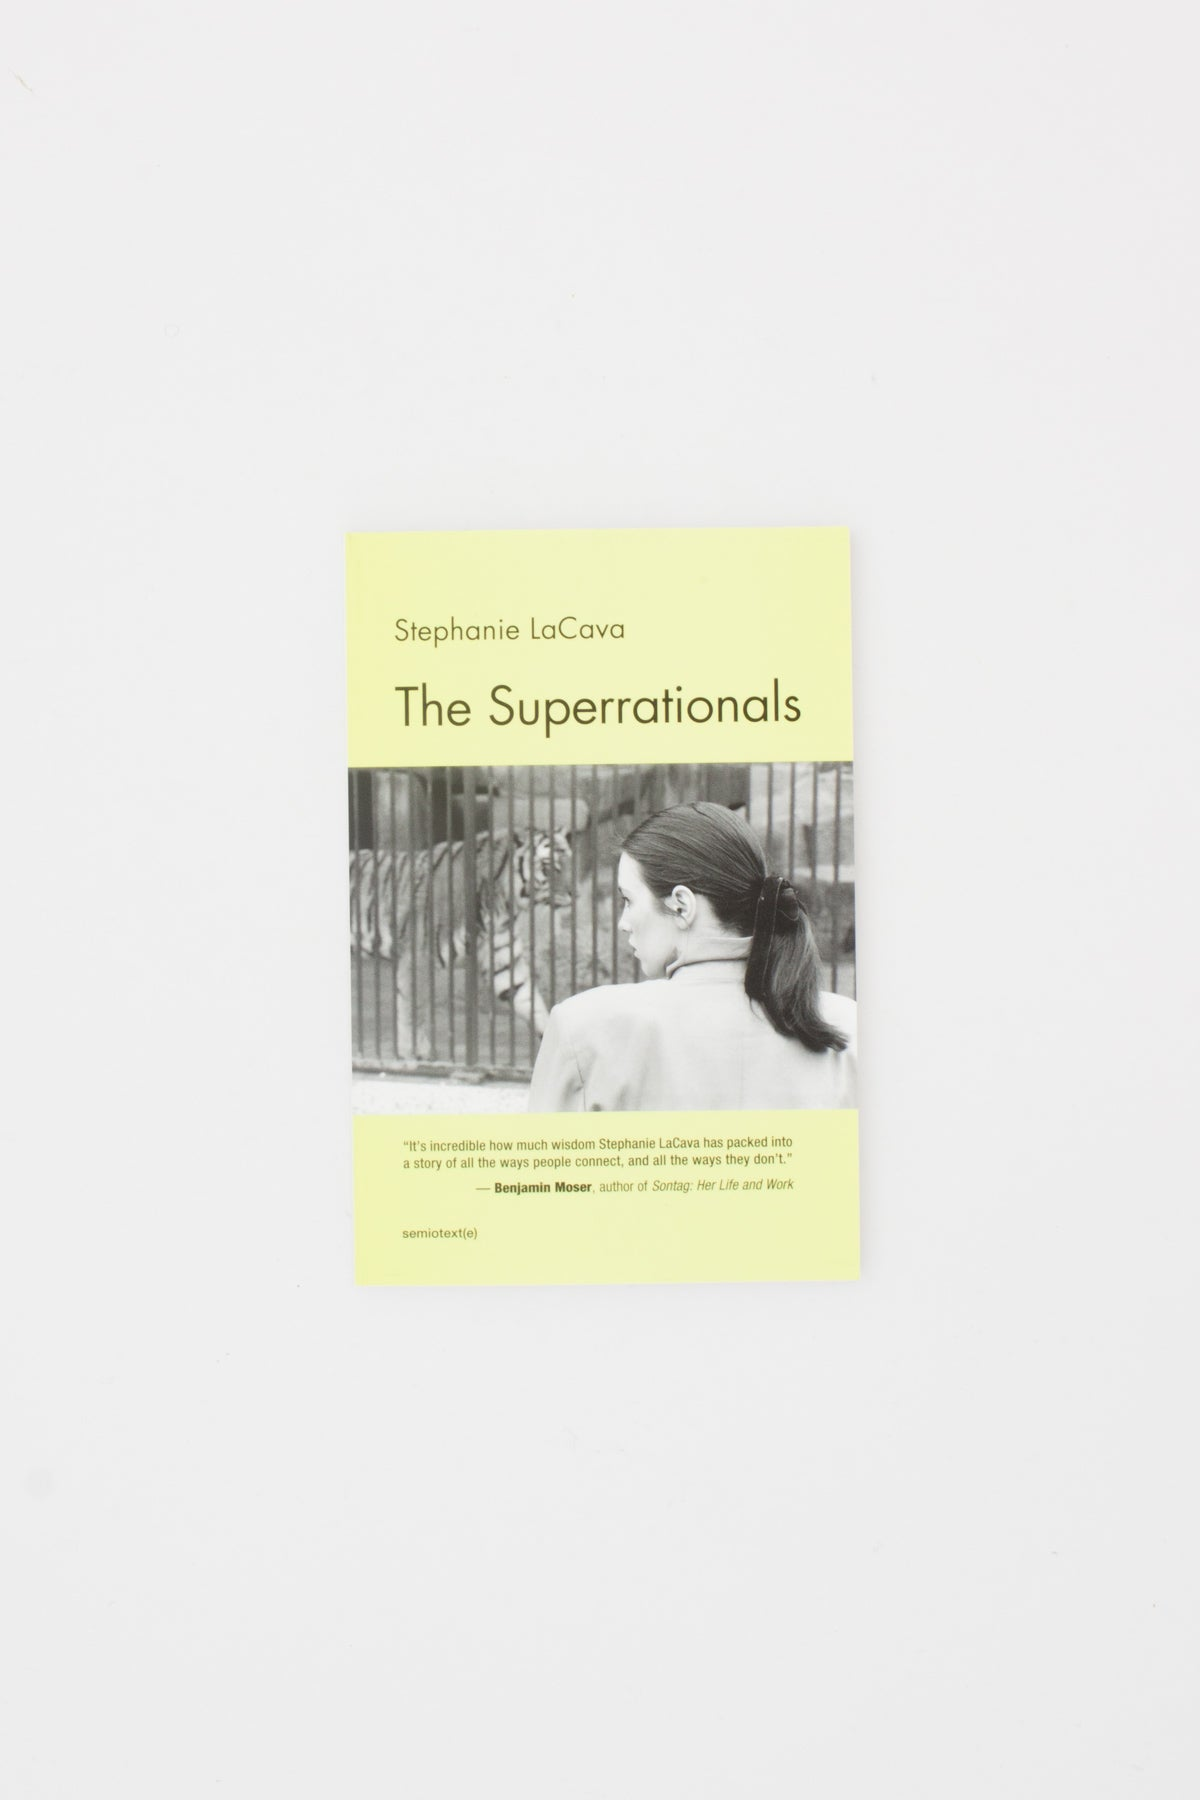 The Superrationals - Stephanie LaCava